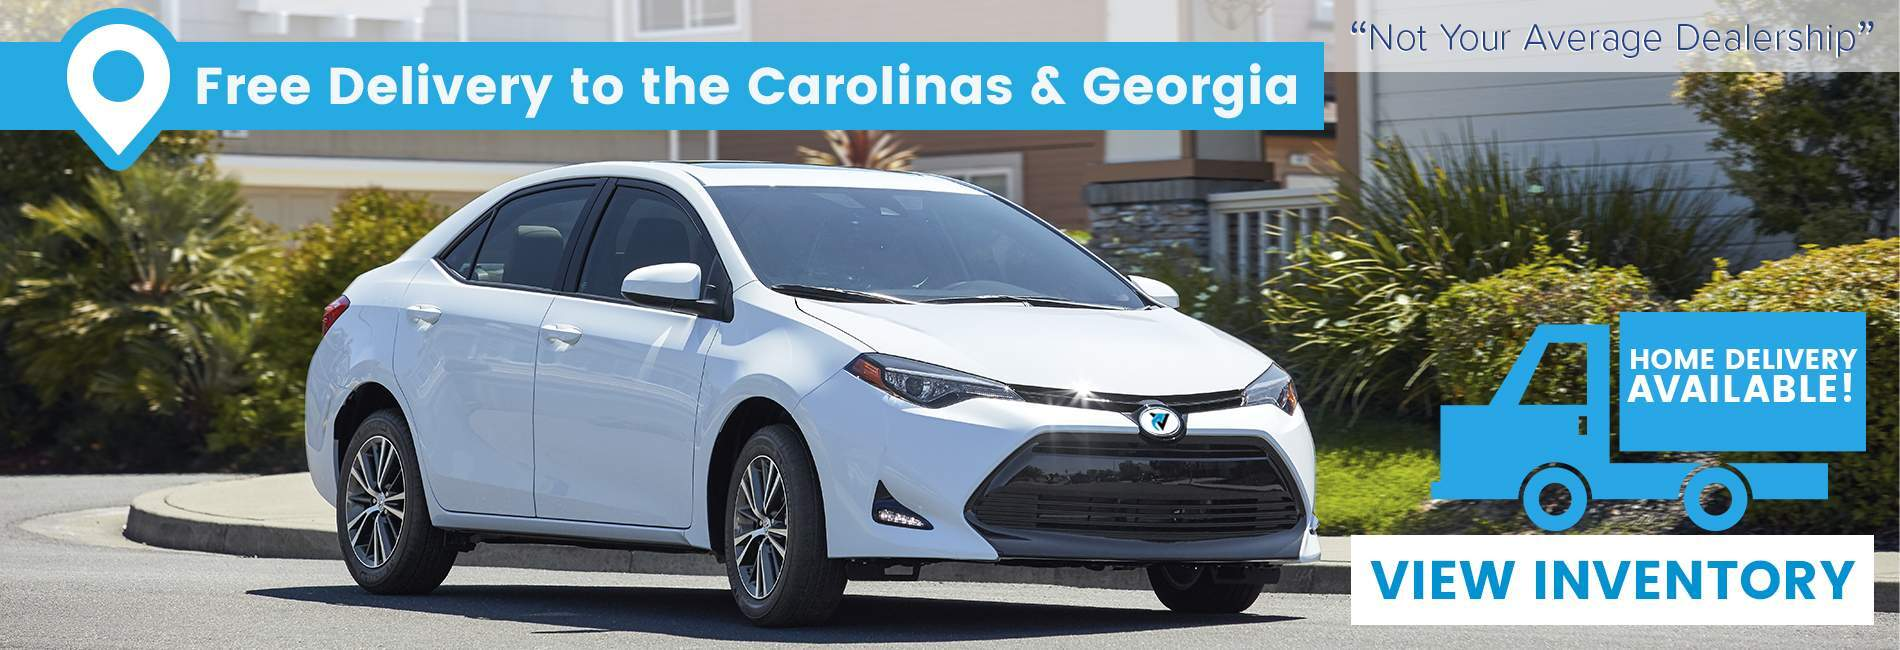 Dave ramsey endorsed car dealer - We Offer Free Delivery To The Carolinas And Georgia In North Charleston Sc